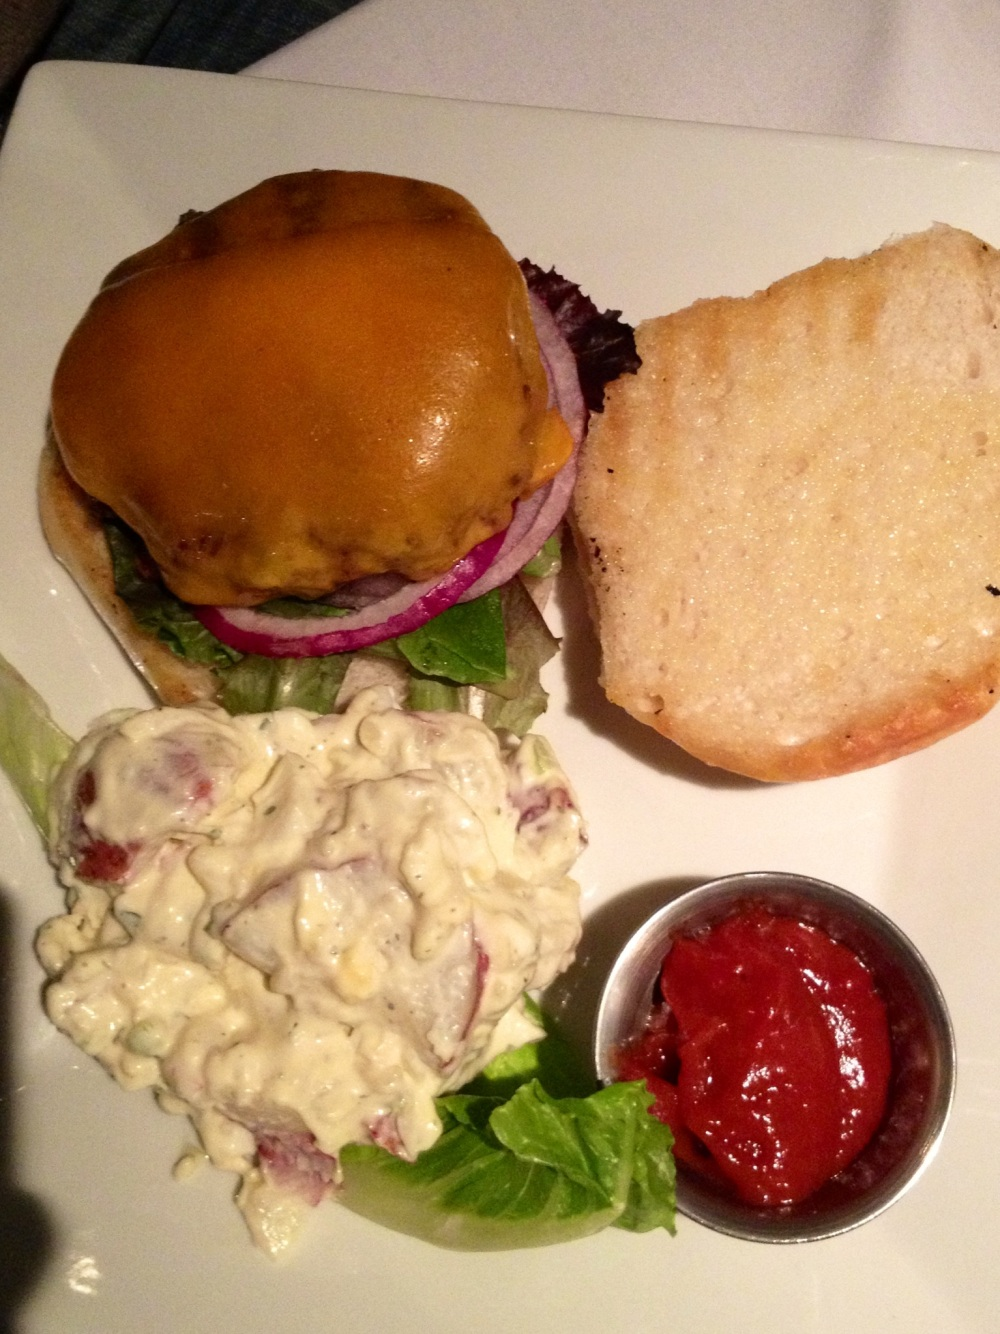 Axis venison burger with potato salad